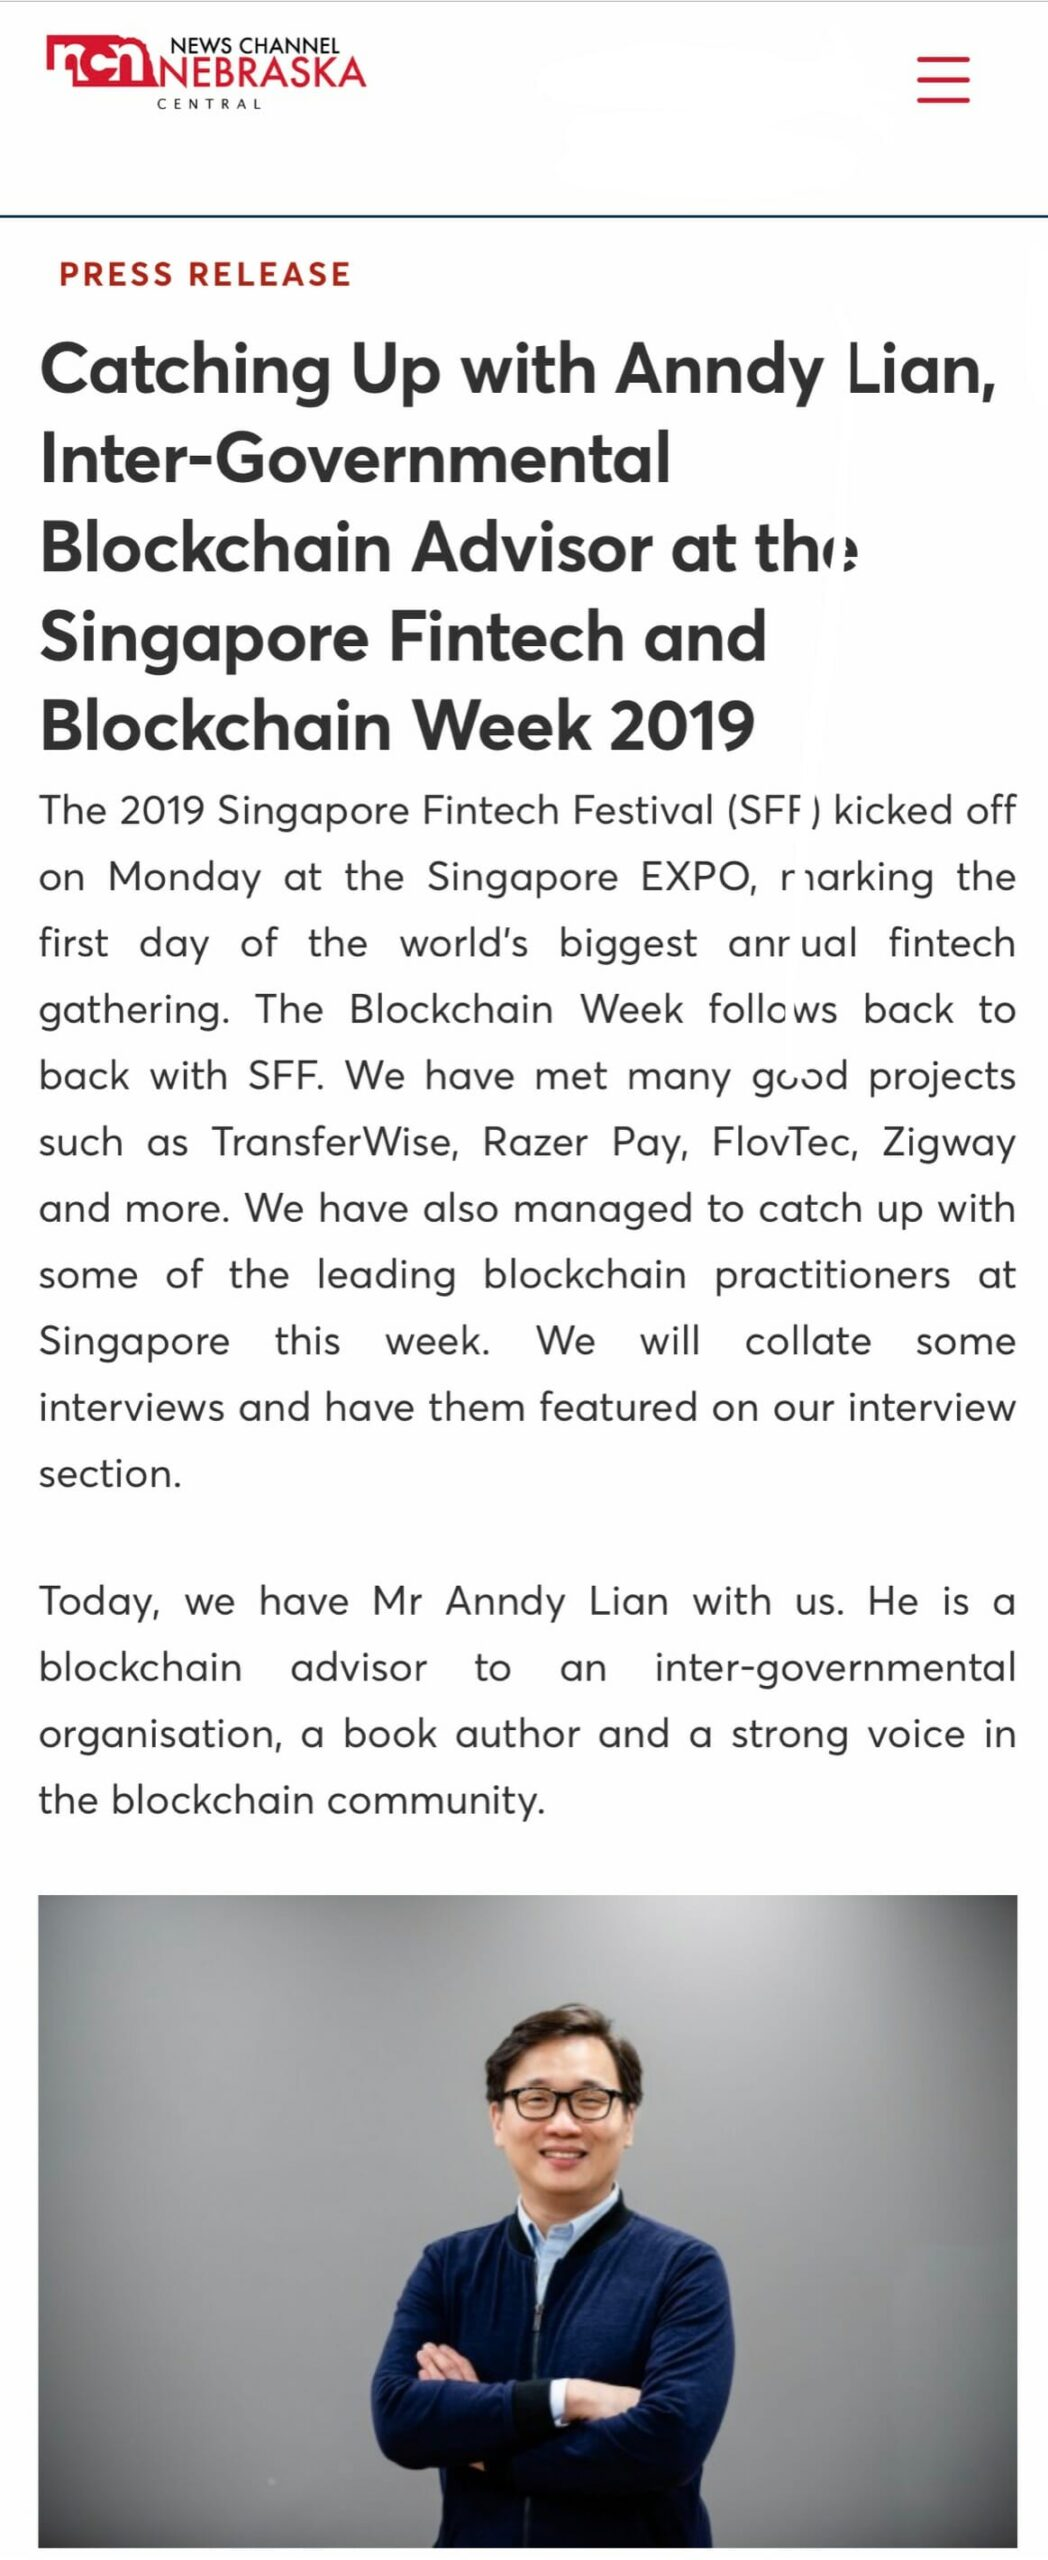 , Nebraska News: Catching Up with Anndy Lian, Inter-Governmental Blockchain Advisor at the Singapore Fintech and Blockchain Week 2019, Blockchain Adviser for Inter-Governmental Organisation | Book Author | Investor | Board Member